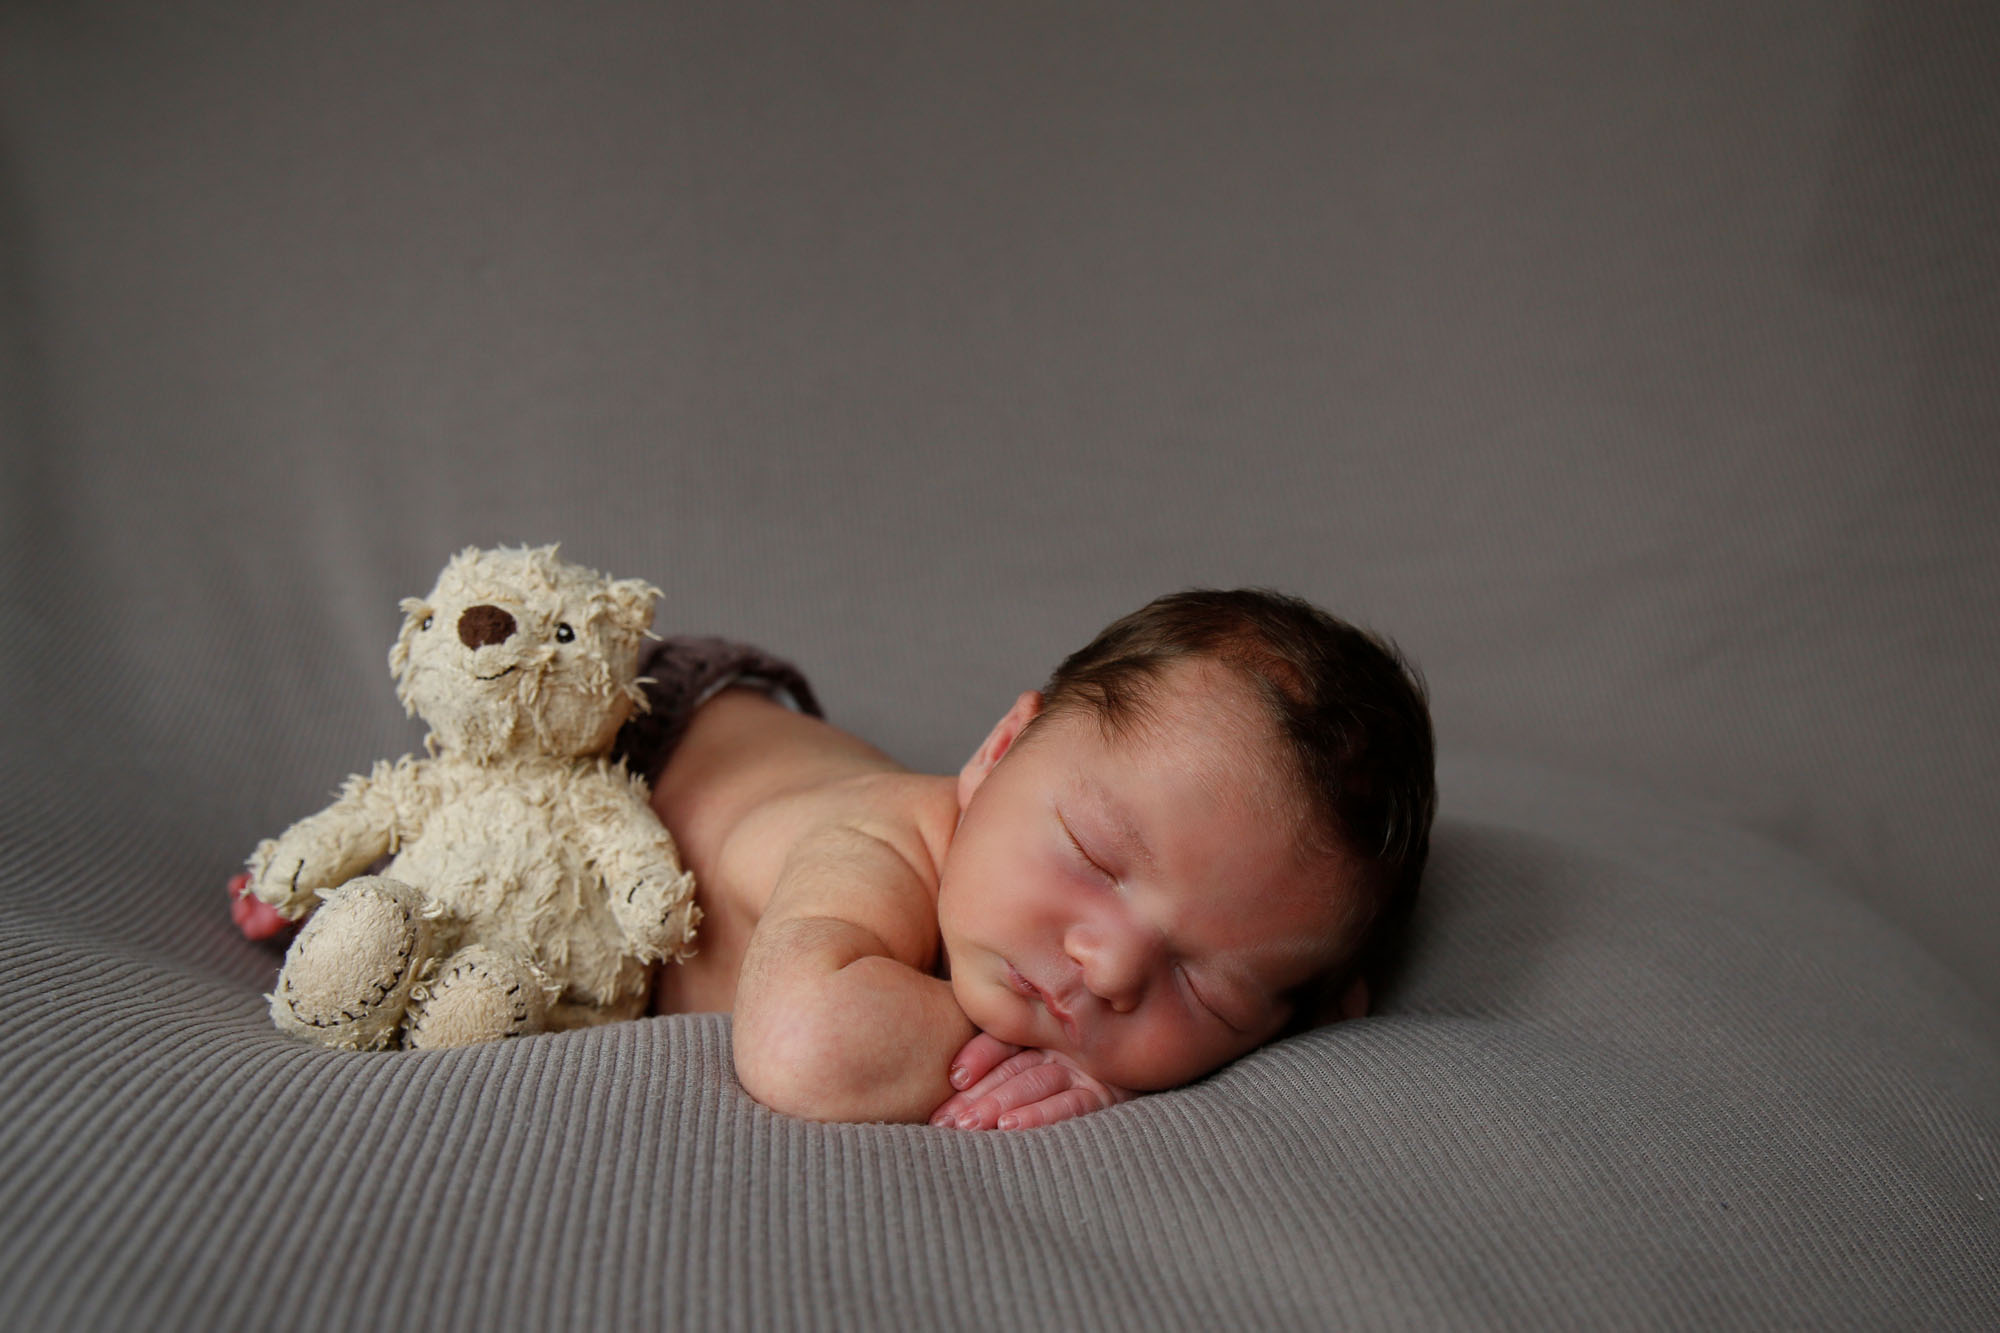 newborn-photography-berkshire-hampshire-50.jpg